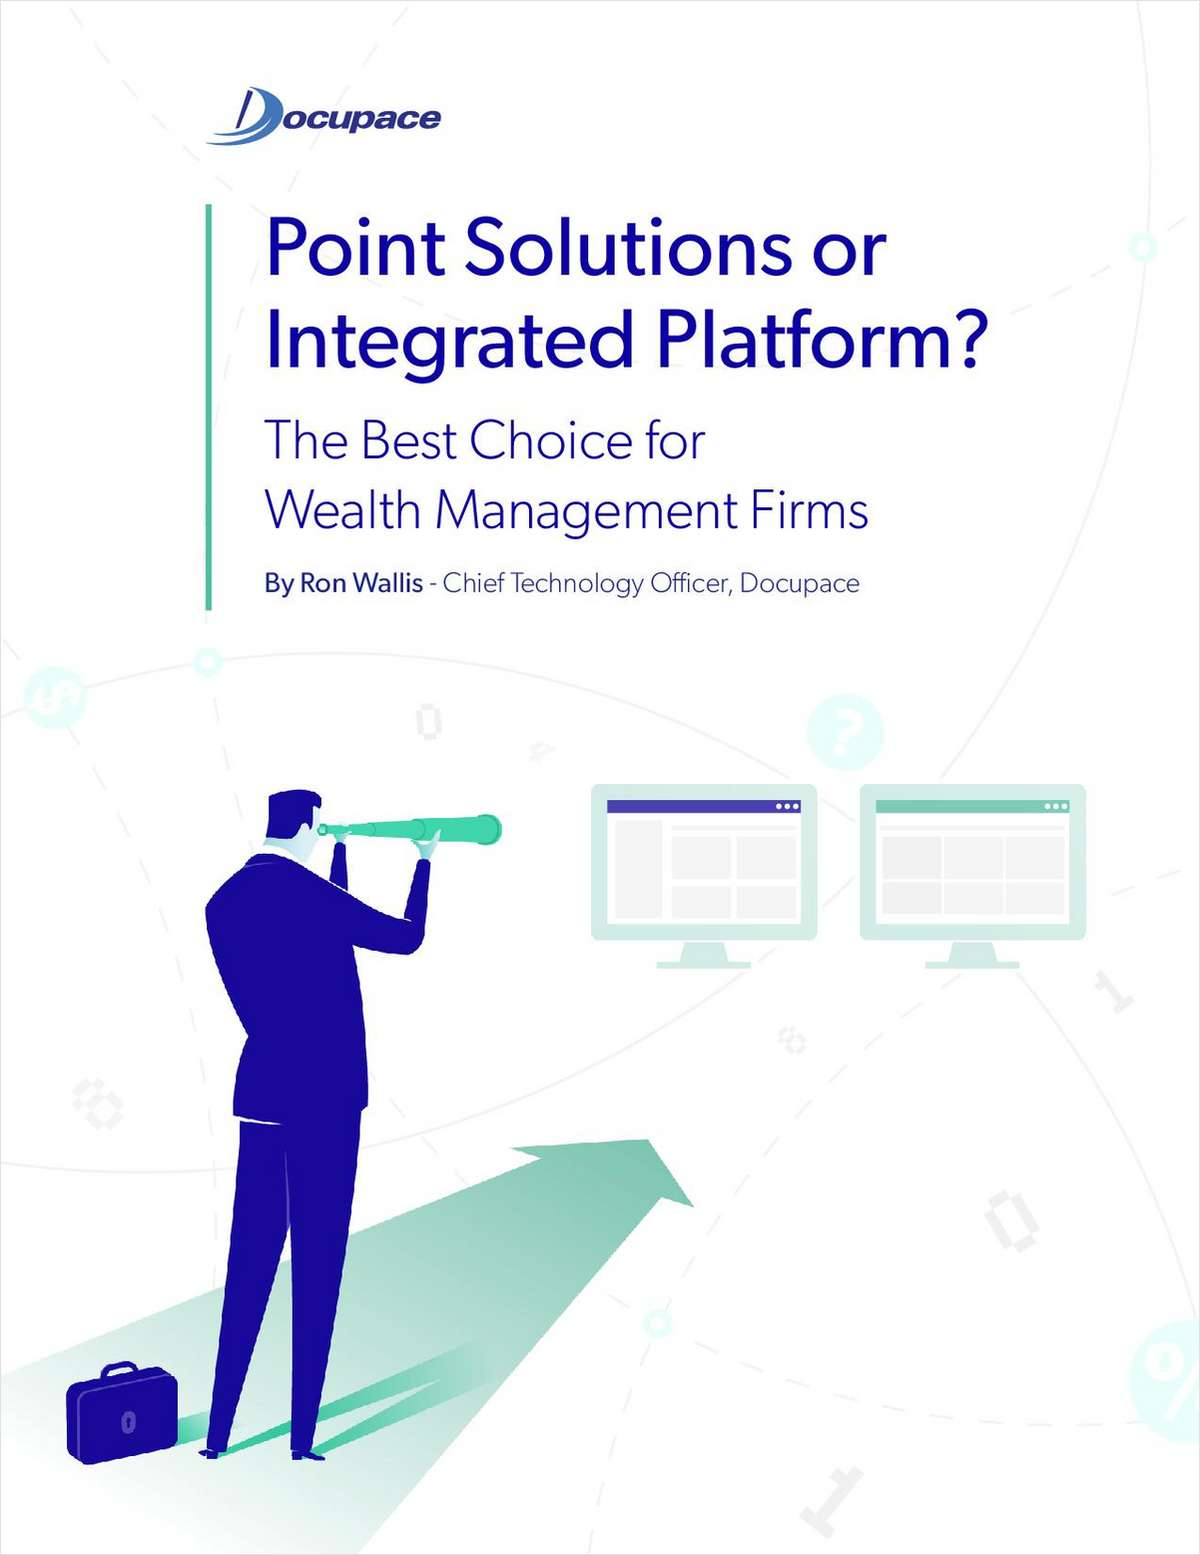 Point Solutions or Integrated Platform? The Best Choice for Wealth Management Firms